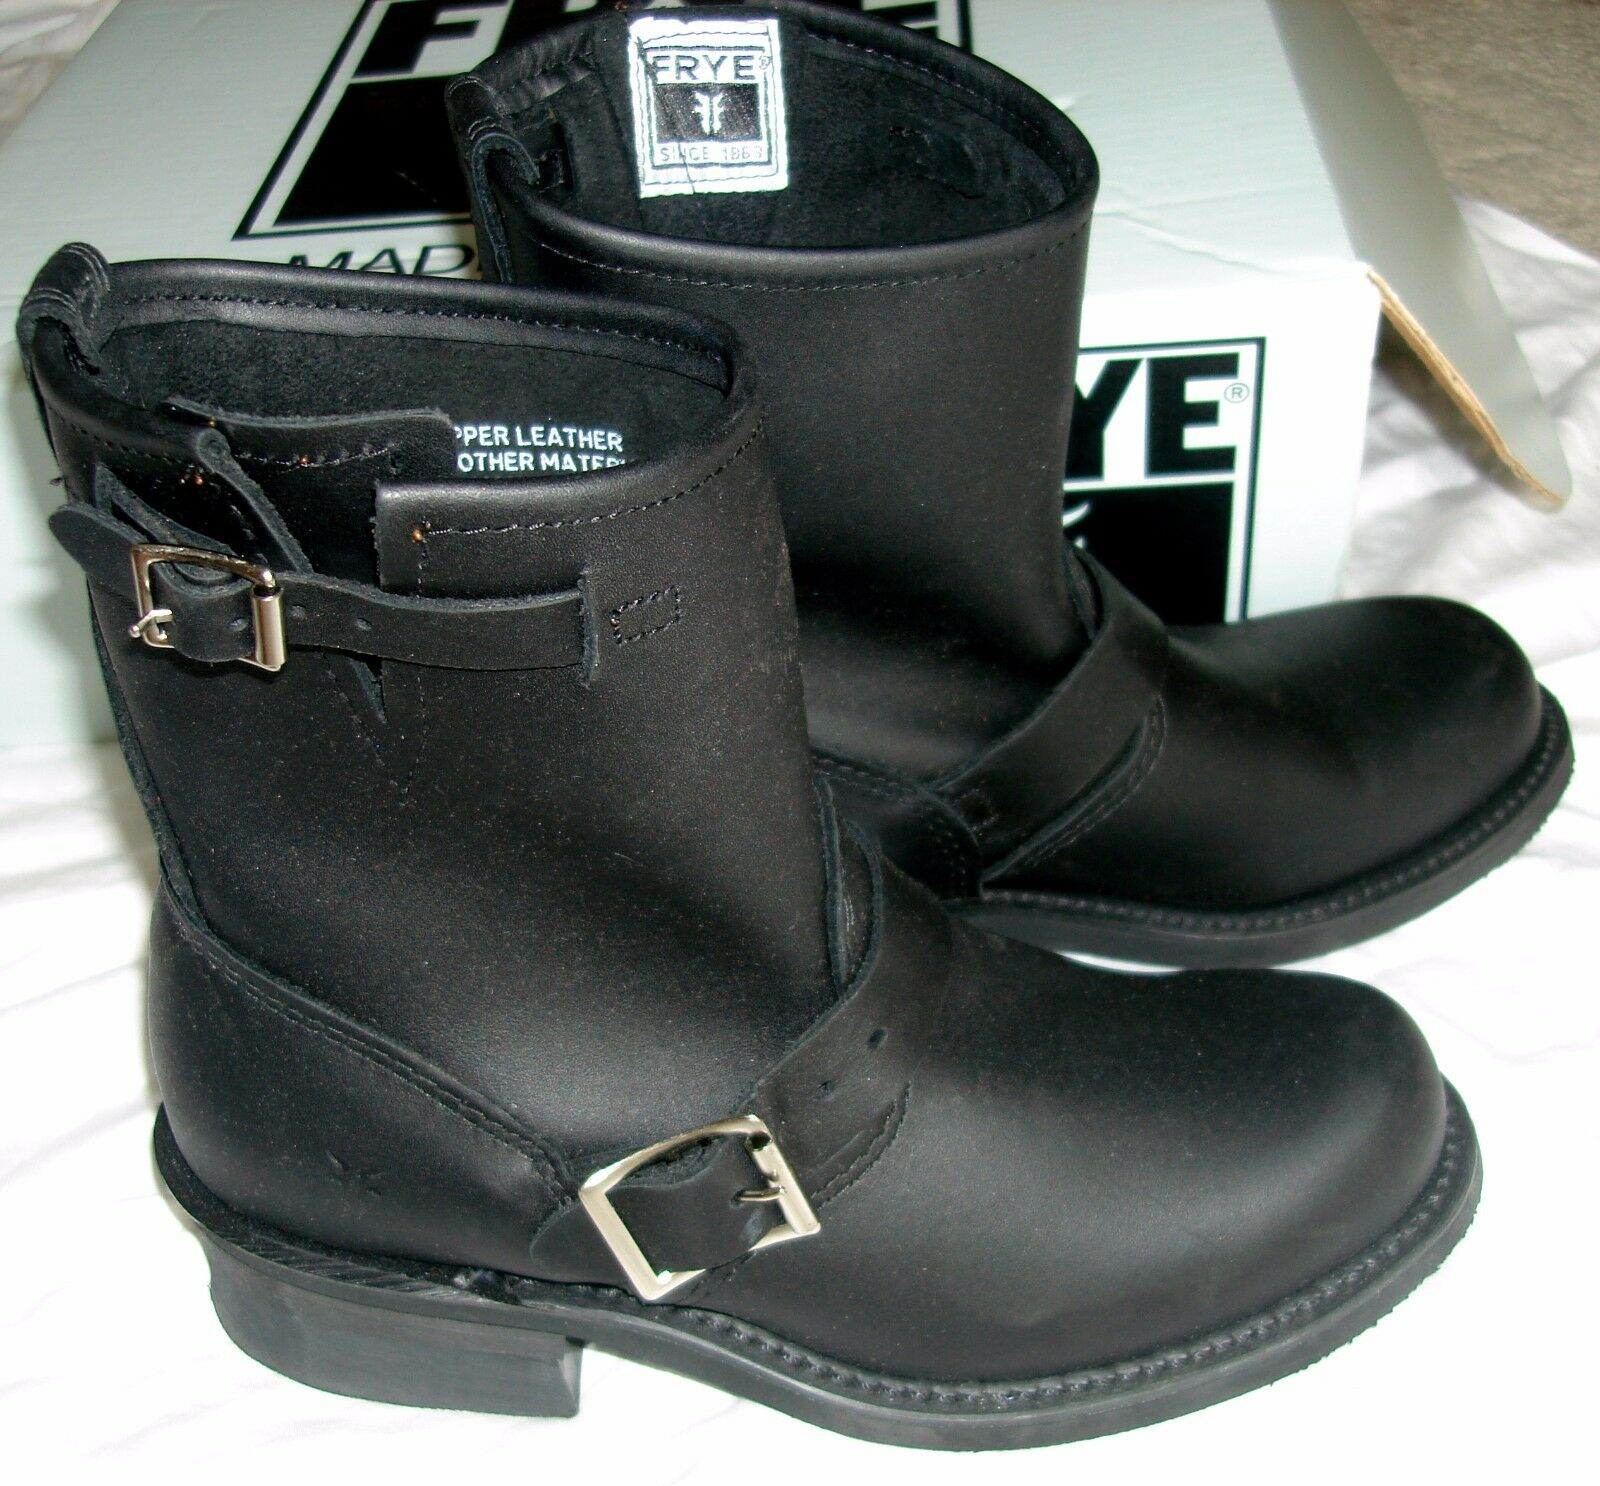 NEW FRYE WOMEN'S BLACK ENGINEER 8R SHORT BOOTS MOTORCYCLE BUCKLE BOOTIE NIB 36 6